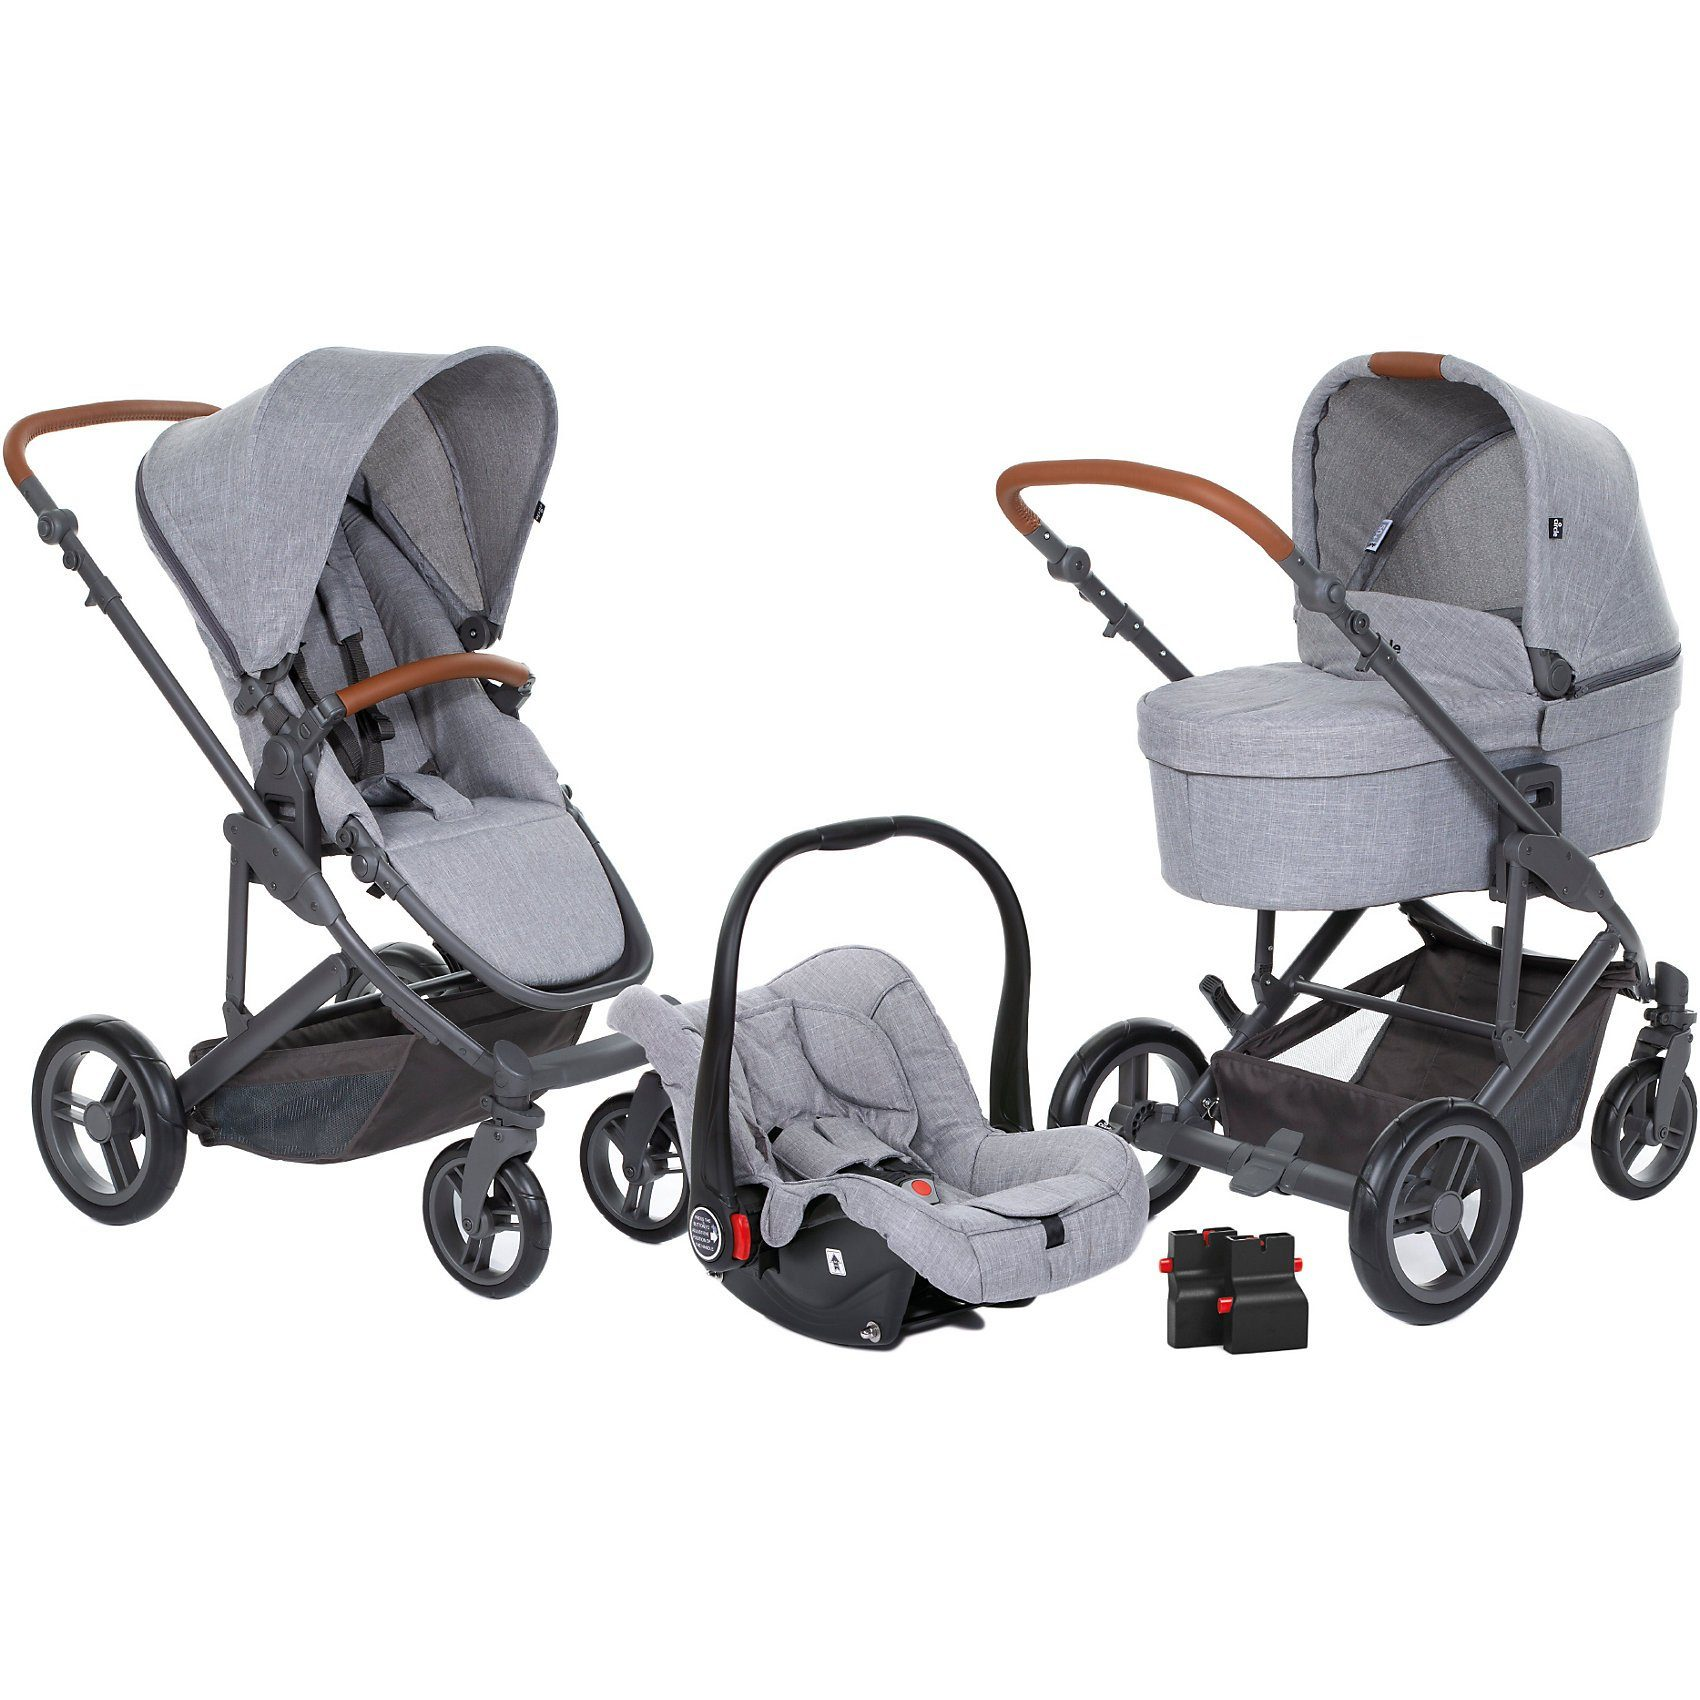 Porsche Design Kinderwagen Kaufen Abc Design Kombi Kinderwagen Catania 4 Travel Set All In One Inkl Mit Online Kaufen Otto